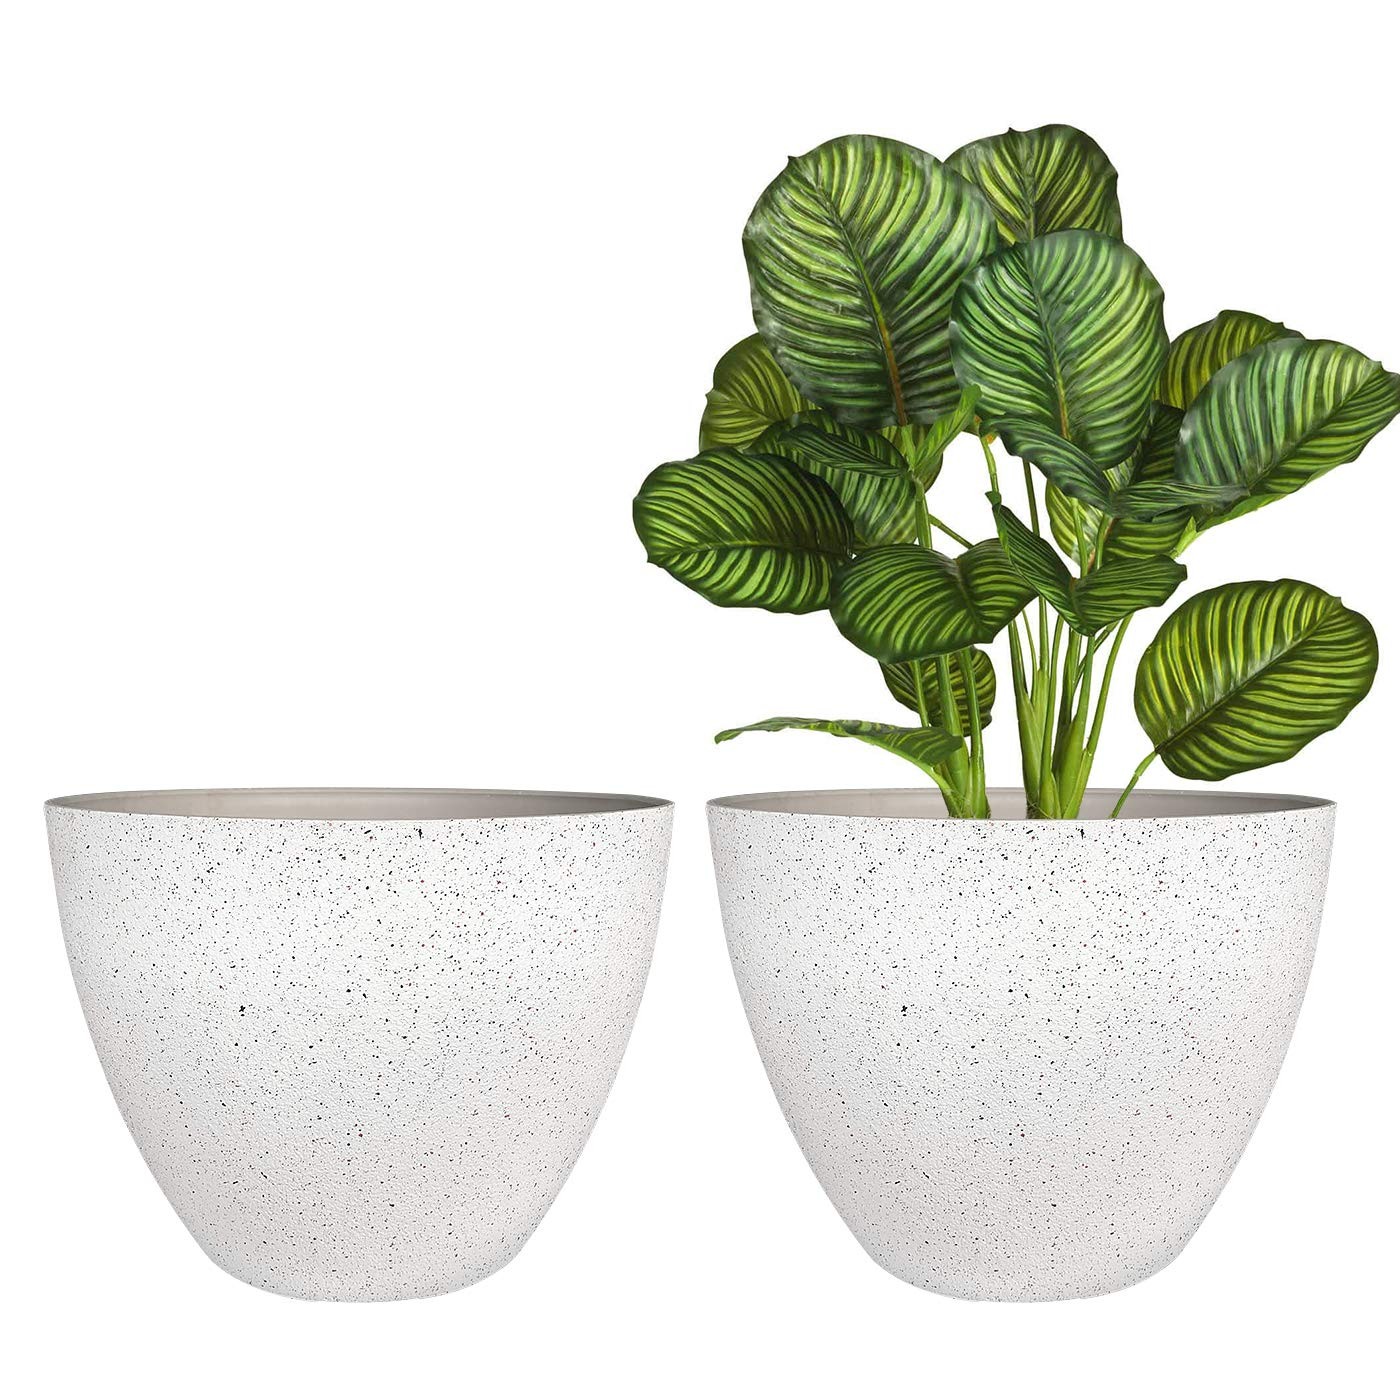 Flower Pots Outdoor,Indoor Pots for Plants Resin Planter, Indoor, Patio, Deck, Speckled White, 11.3 inches Set of 2 …